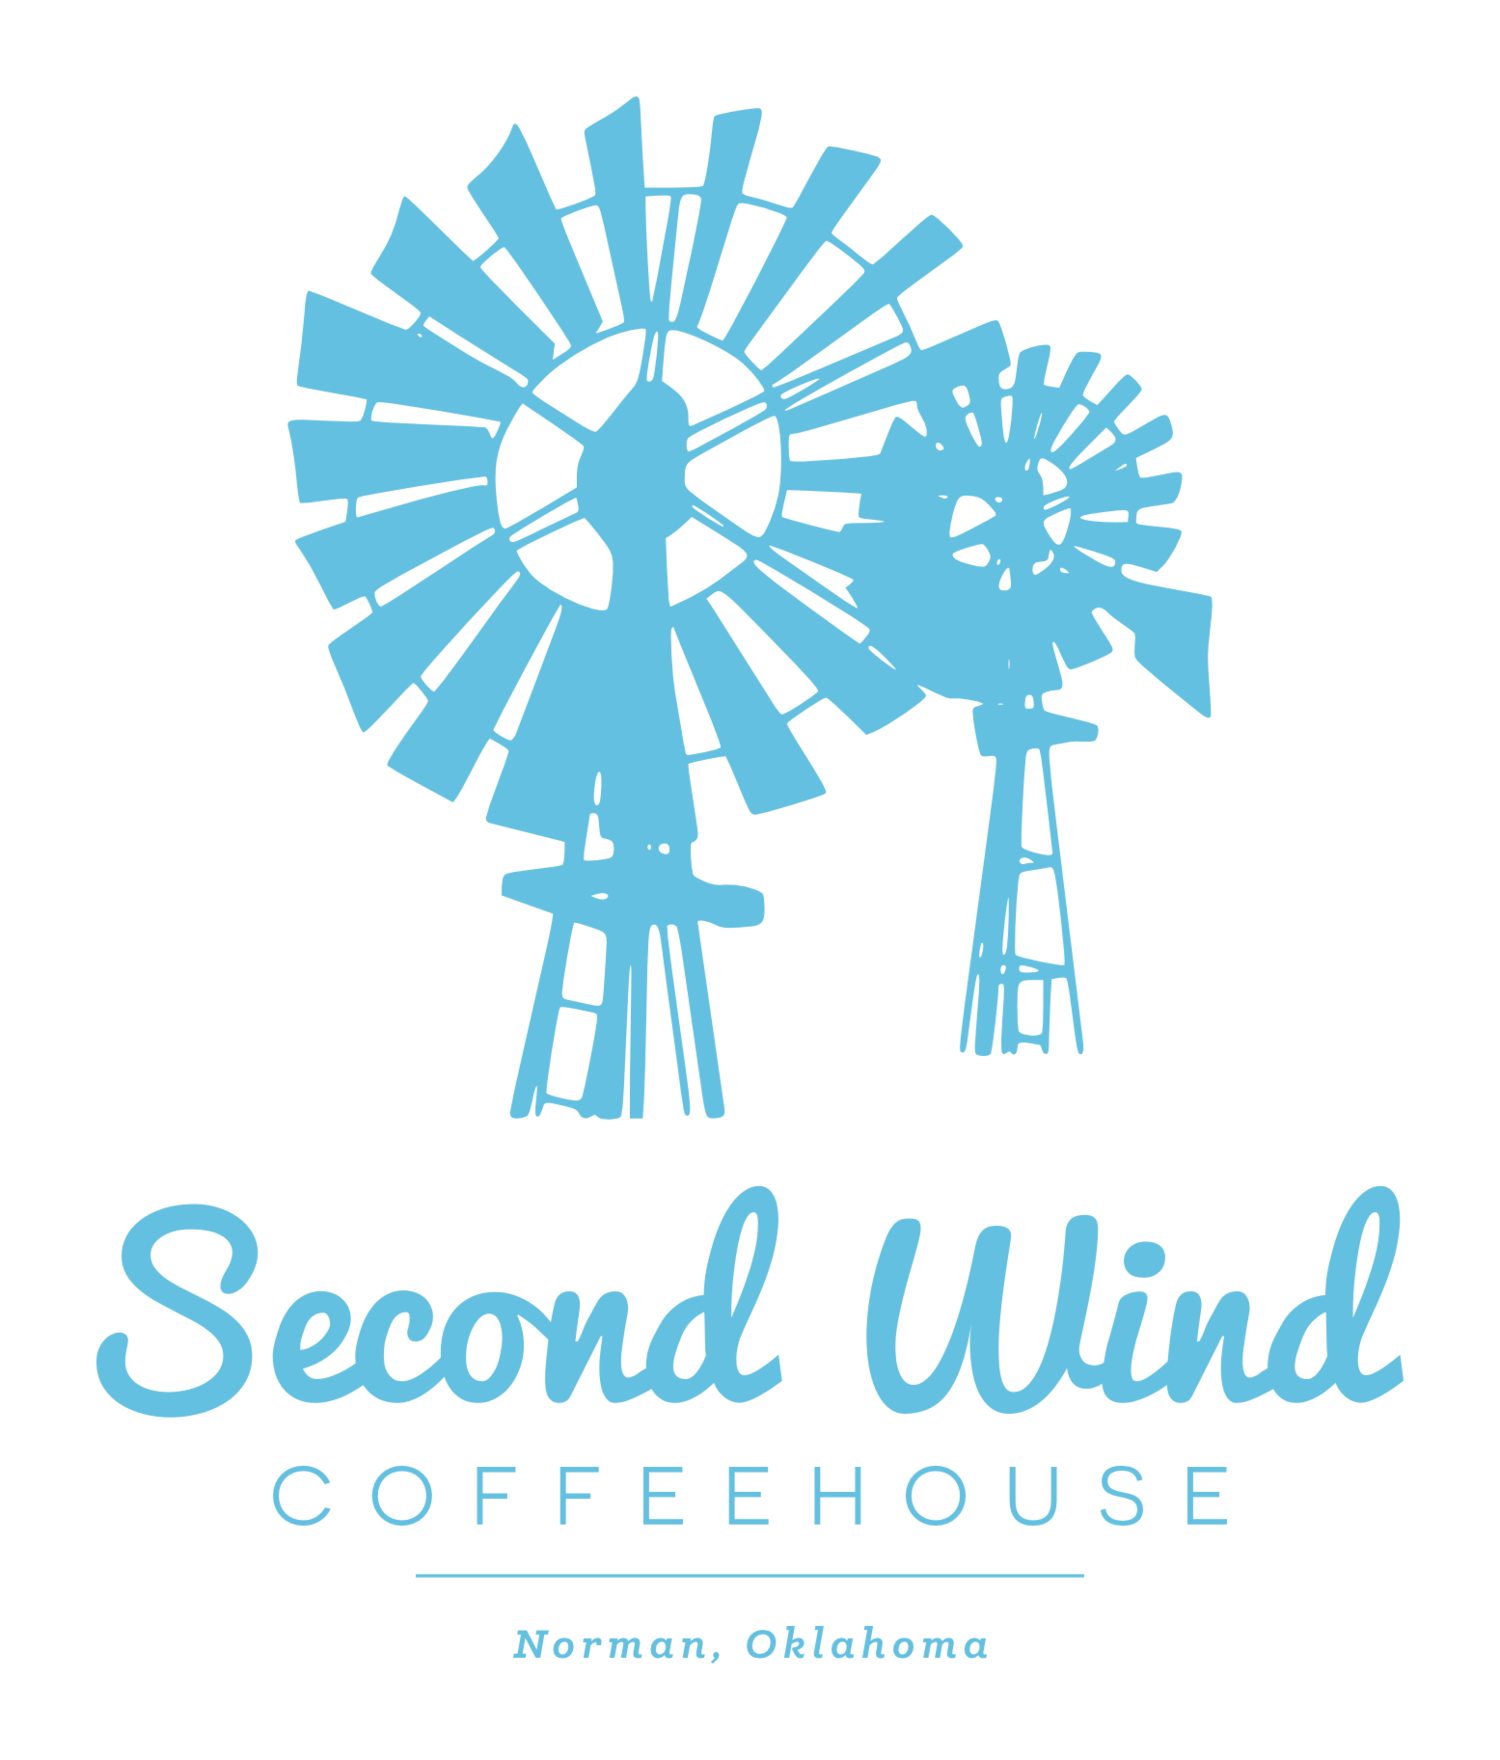 Second Wind Coffee House